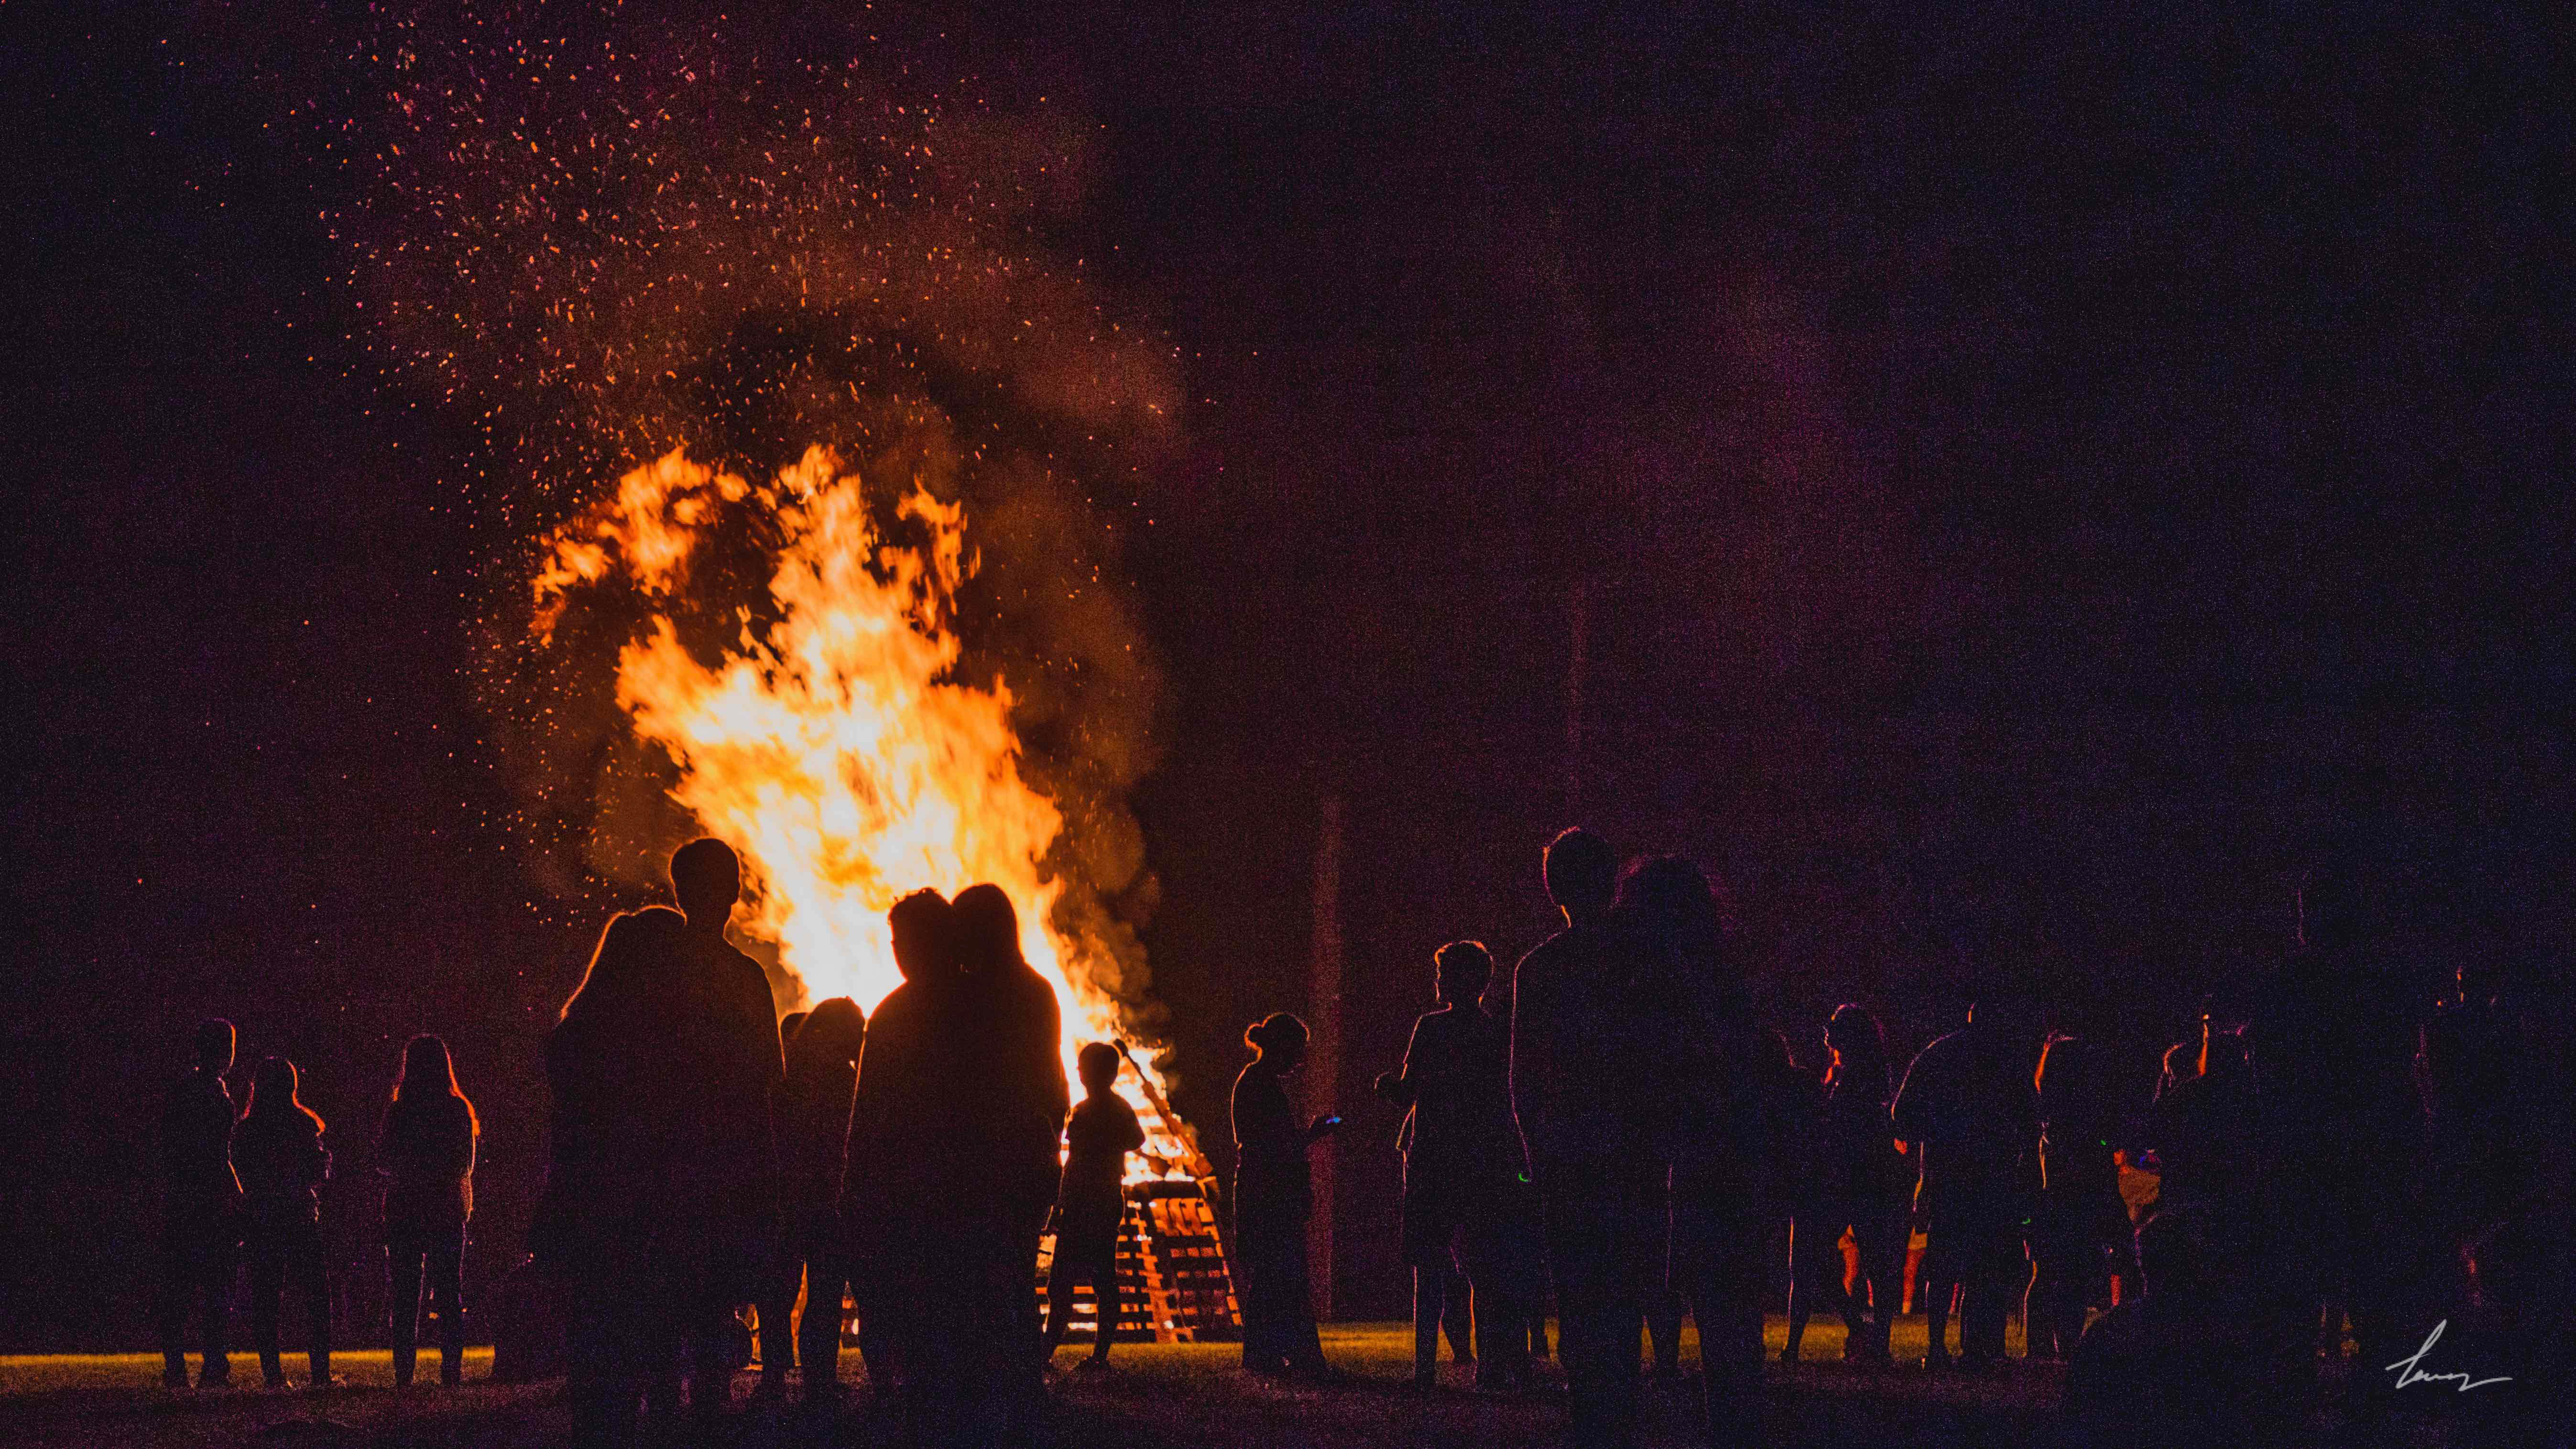 Wissahickon High School Student Council Bonfire - Ambler, PA